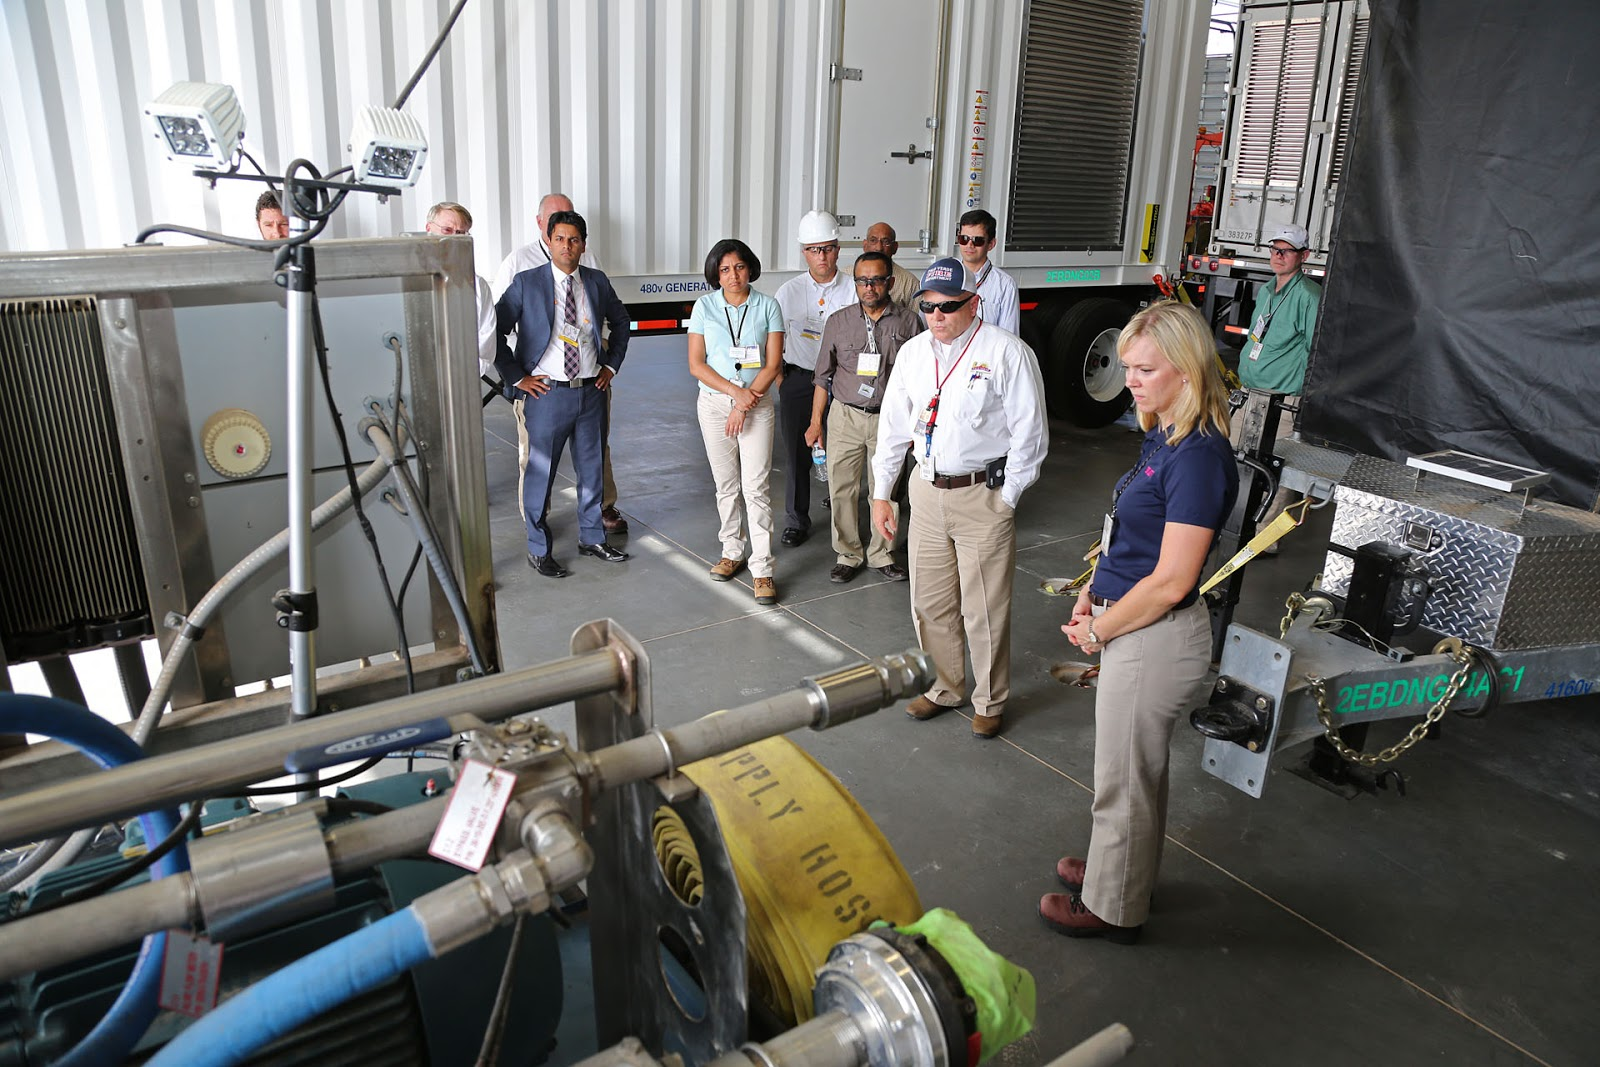 NRC and Palo Verde Focus on Making Nuclear Outages Safer with FLEX